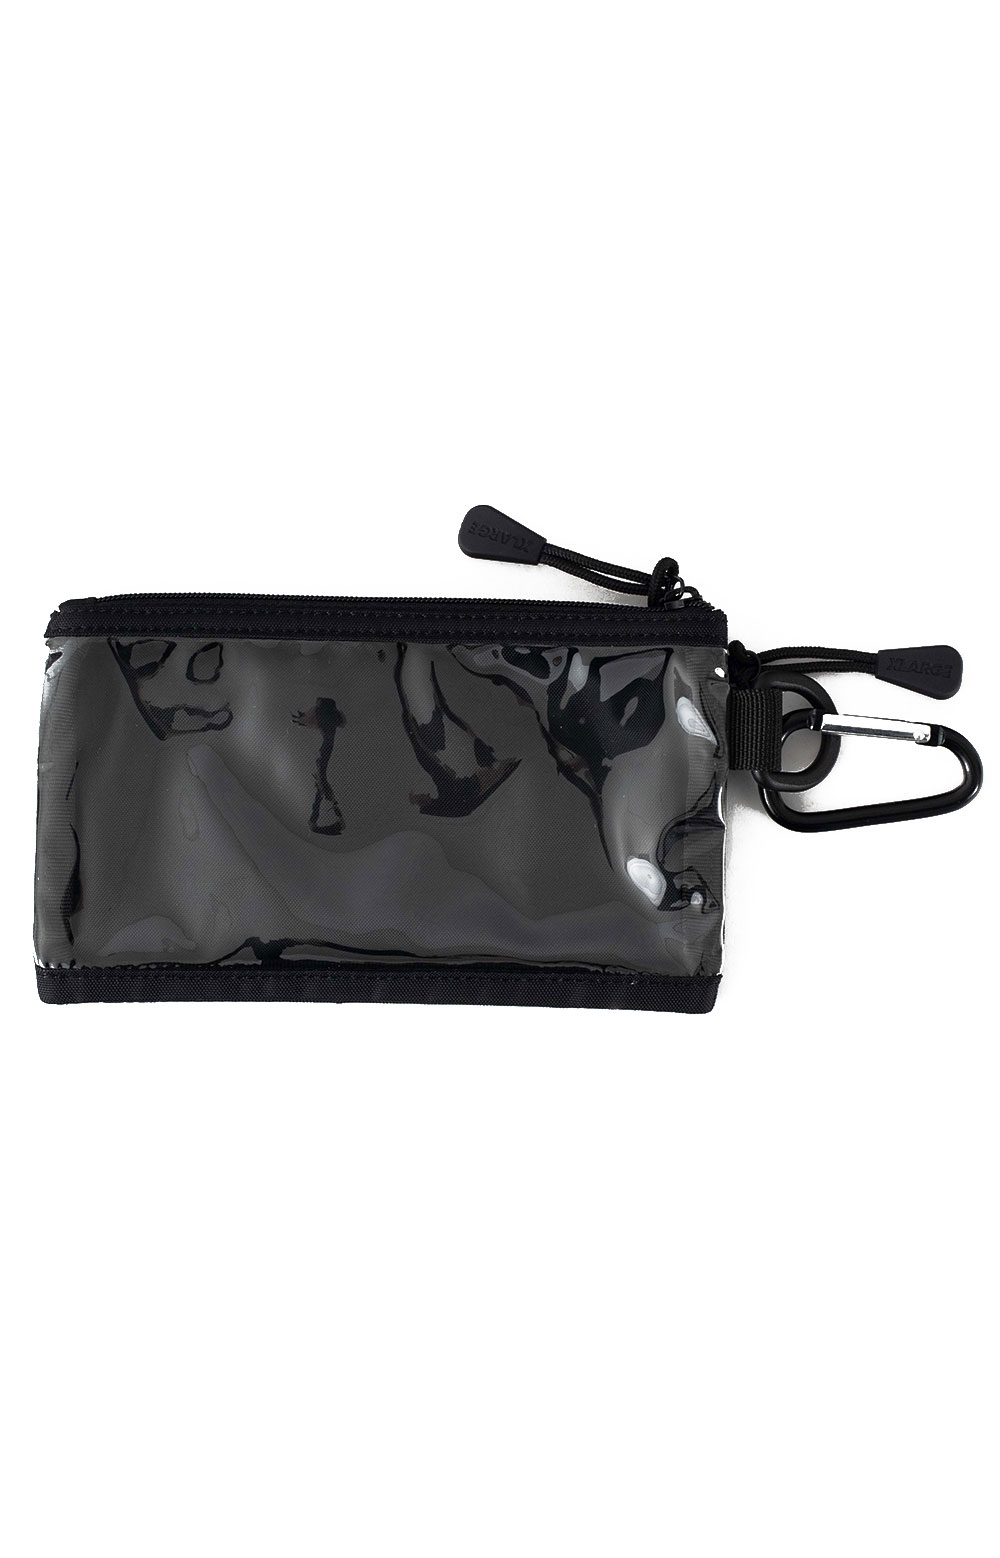 Cell Phone Pouch - Black  2